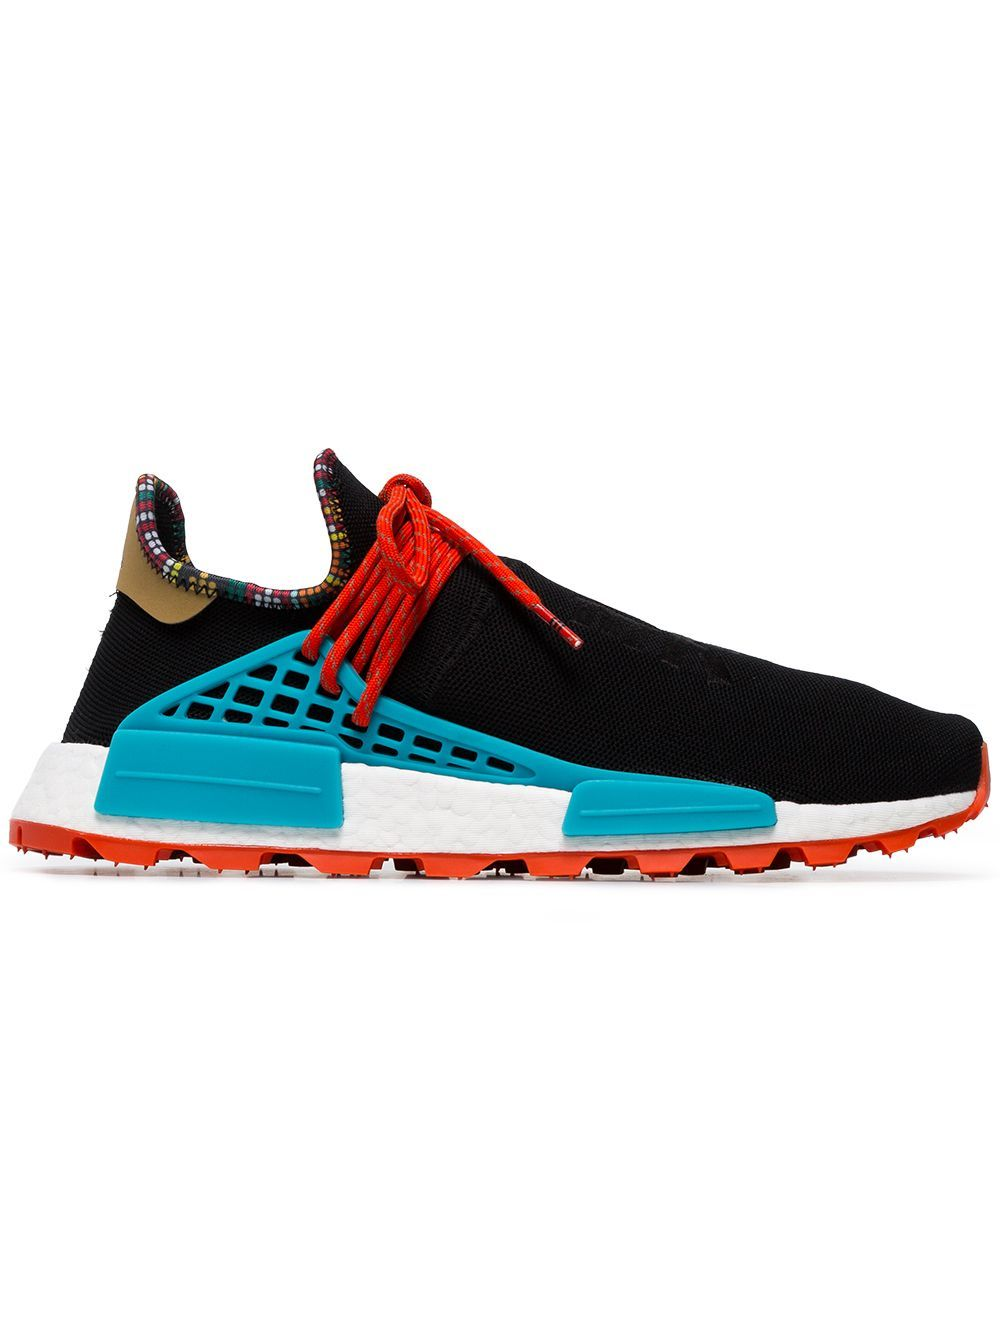 c6ad7158bfd7d ADIDAS ORIGINALS ADIDAS X PHARRELL WILLIAMS BLACK HUMAN BODY NMD SNEAKERS -  黑色.  adidasoriginals  shoes